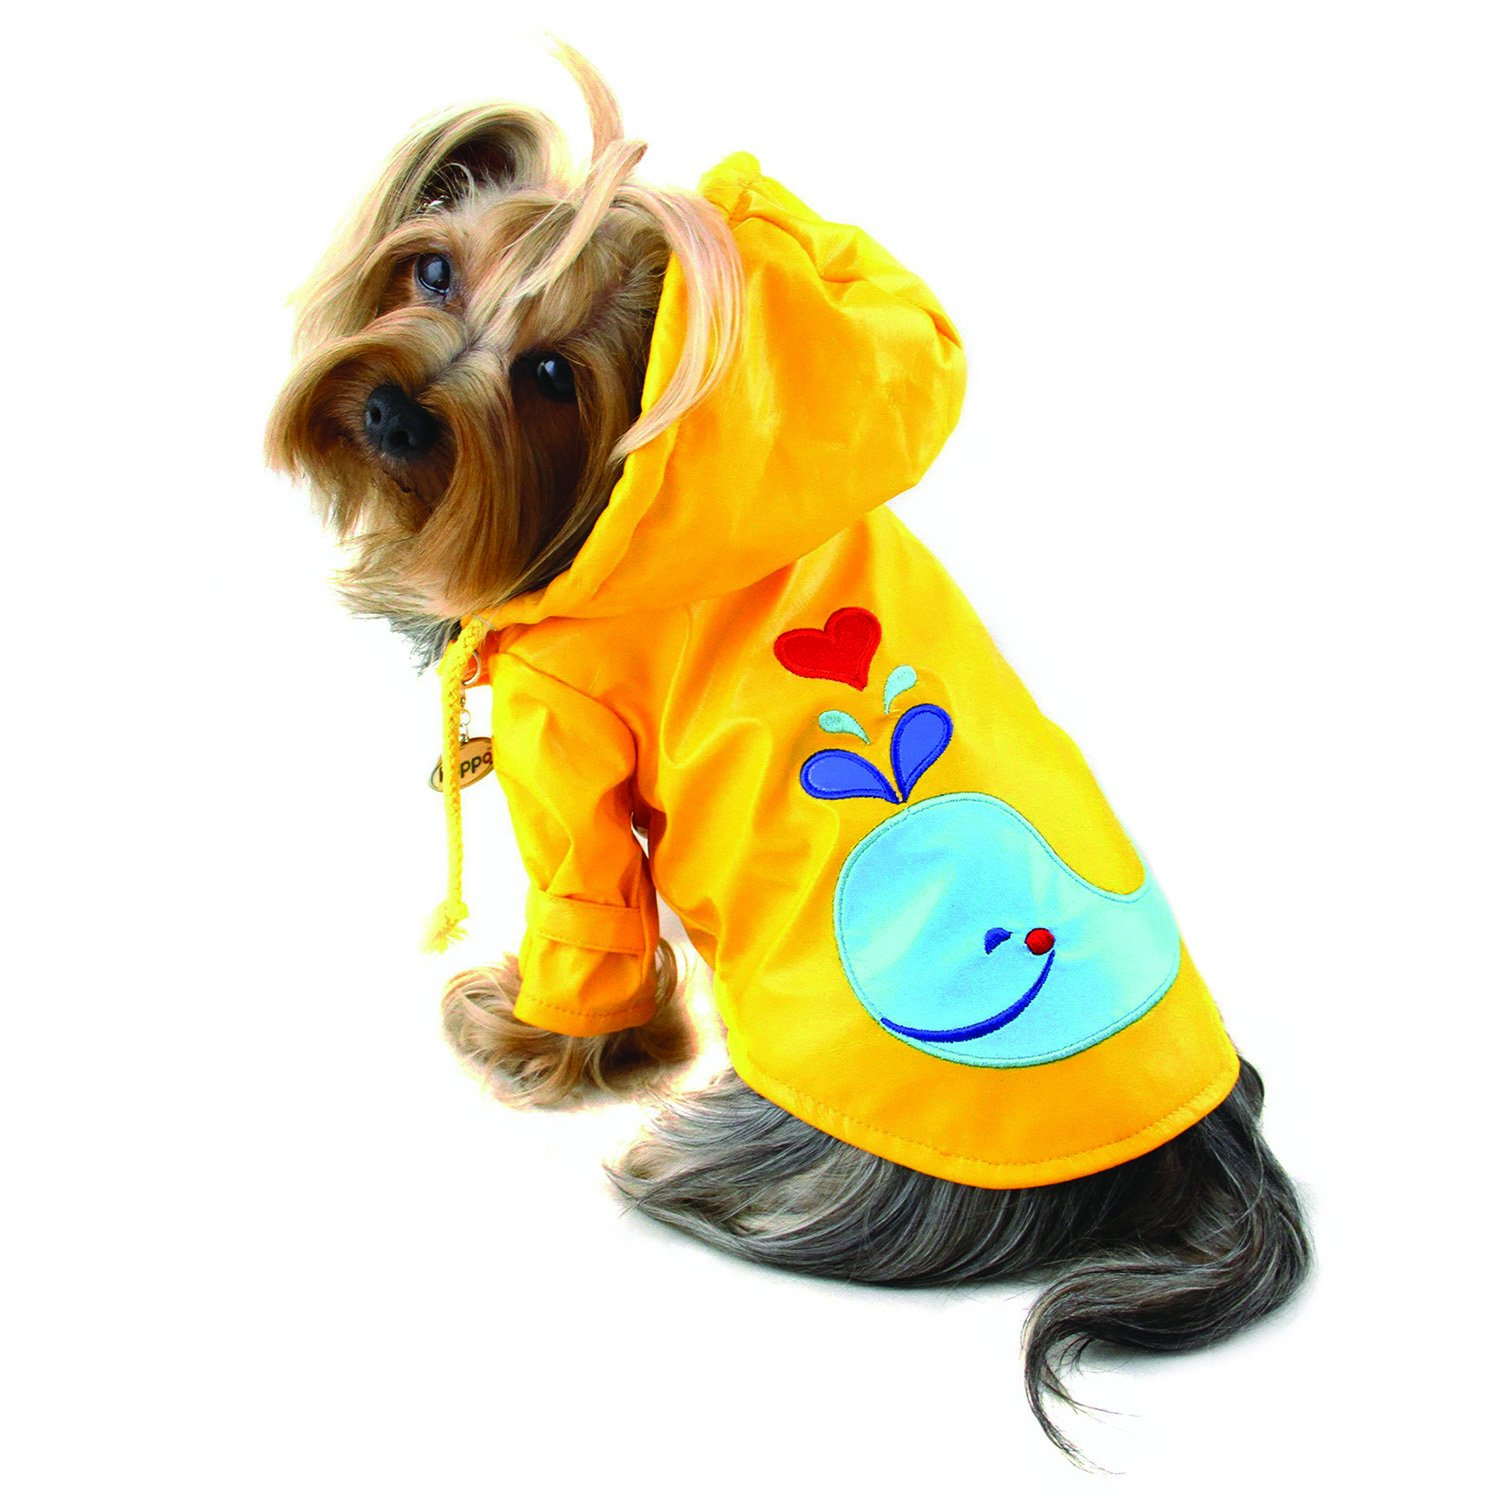 Klippo Dog/Puppy Splashing Whale Waterproof Jacket/Raincoat/Rain Gear/Rainwear with Cotton Lining for Small Breeds (SMALL) by Klippo